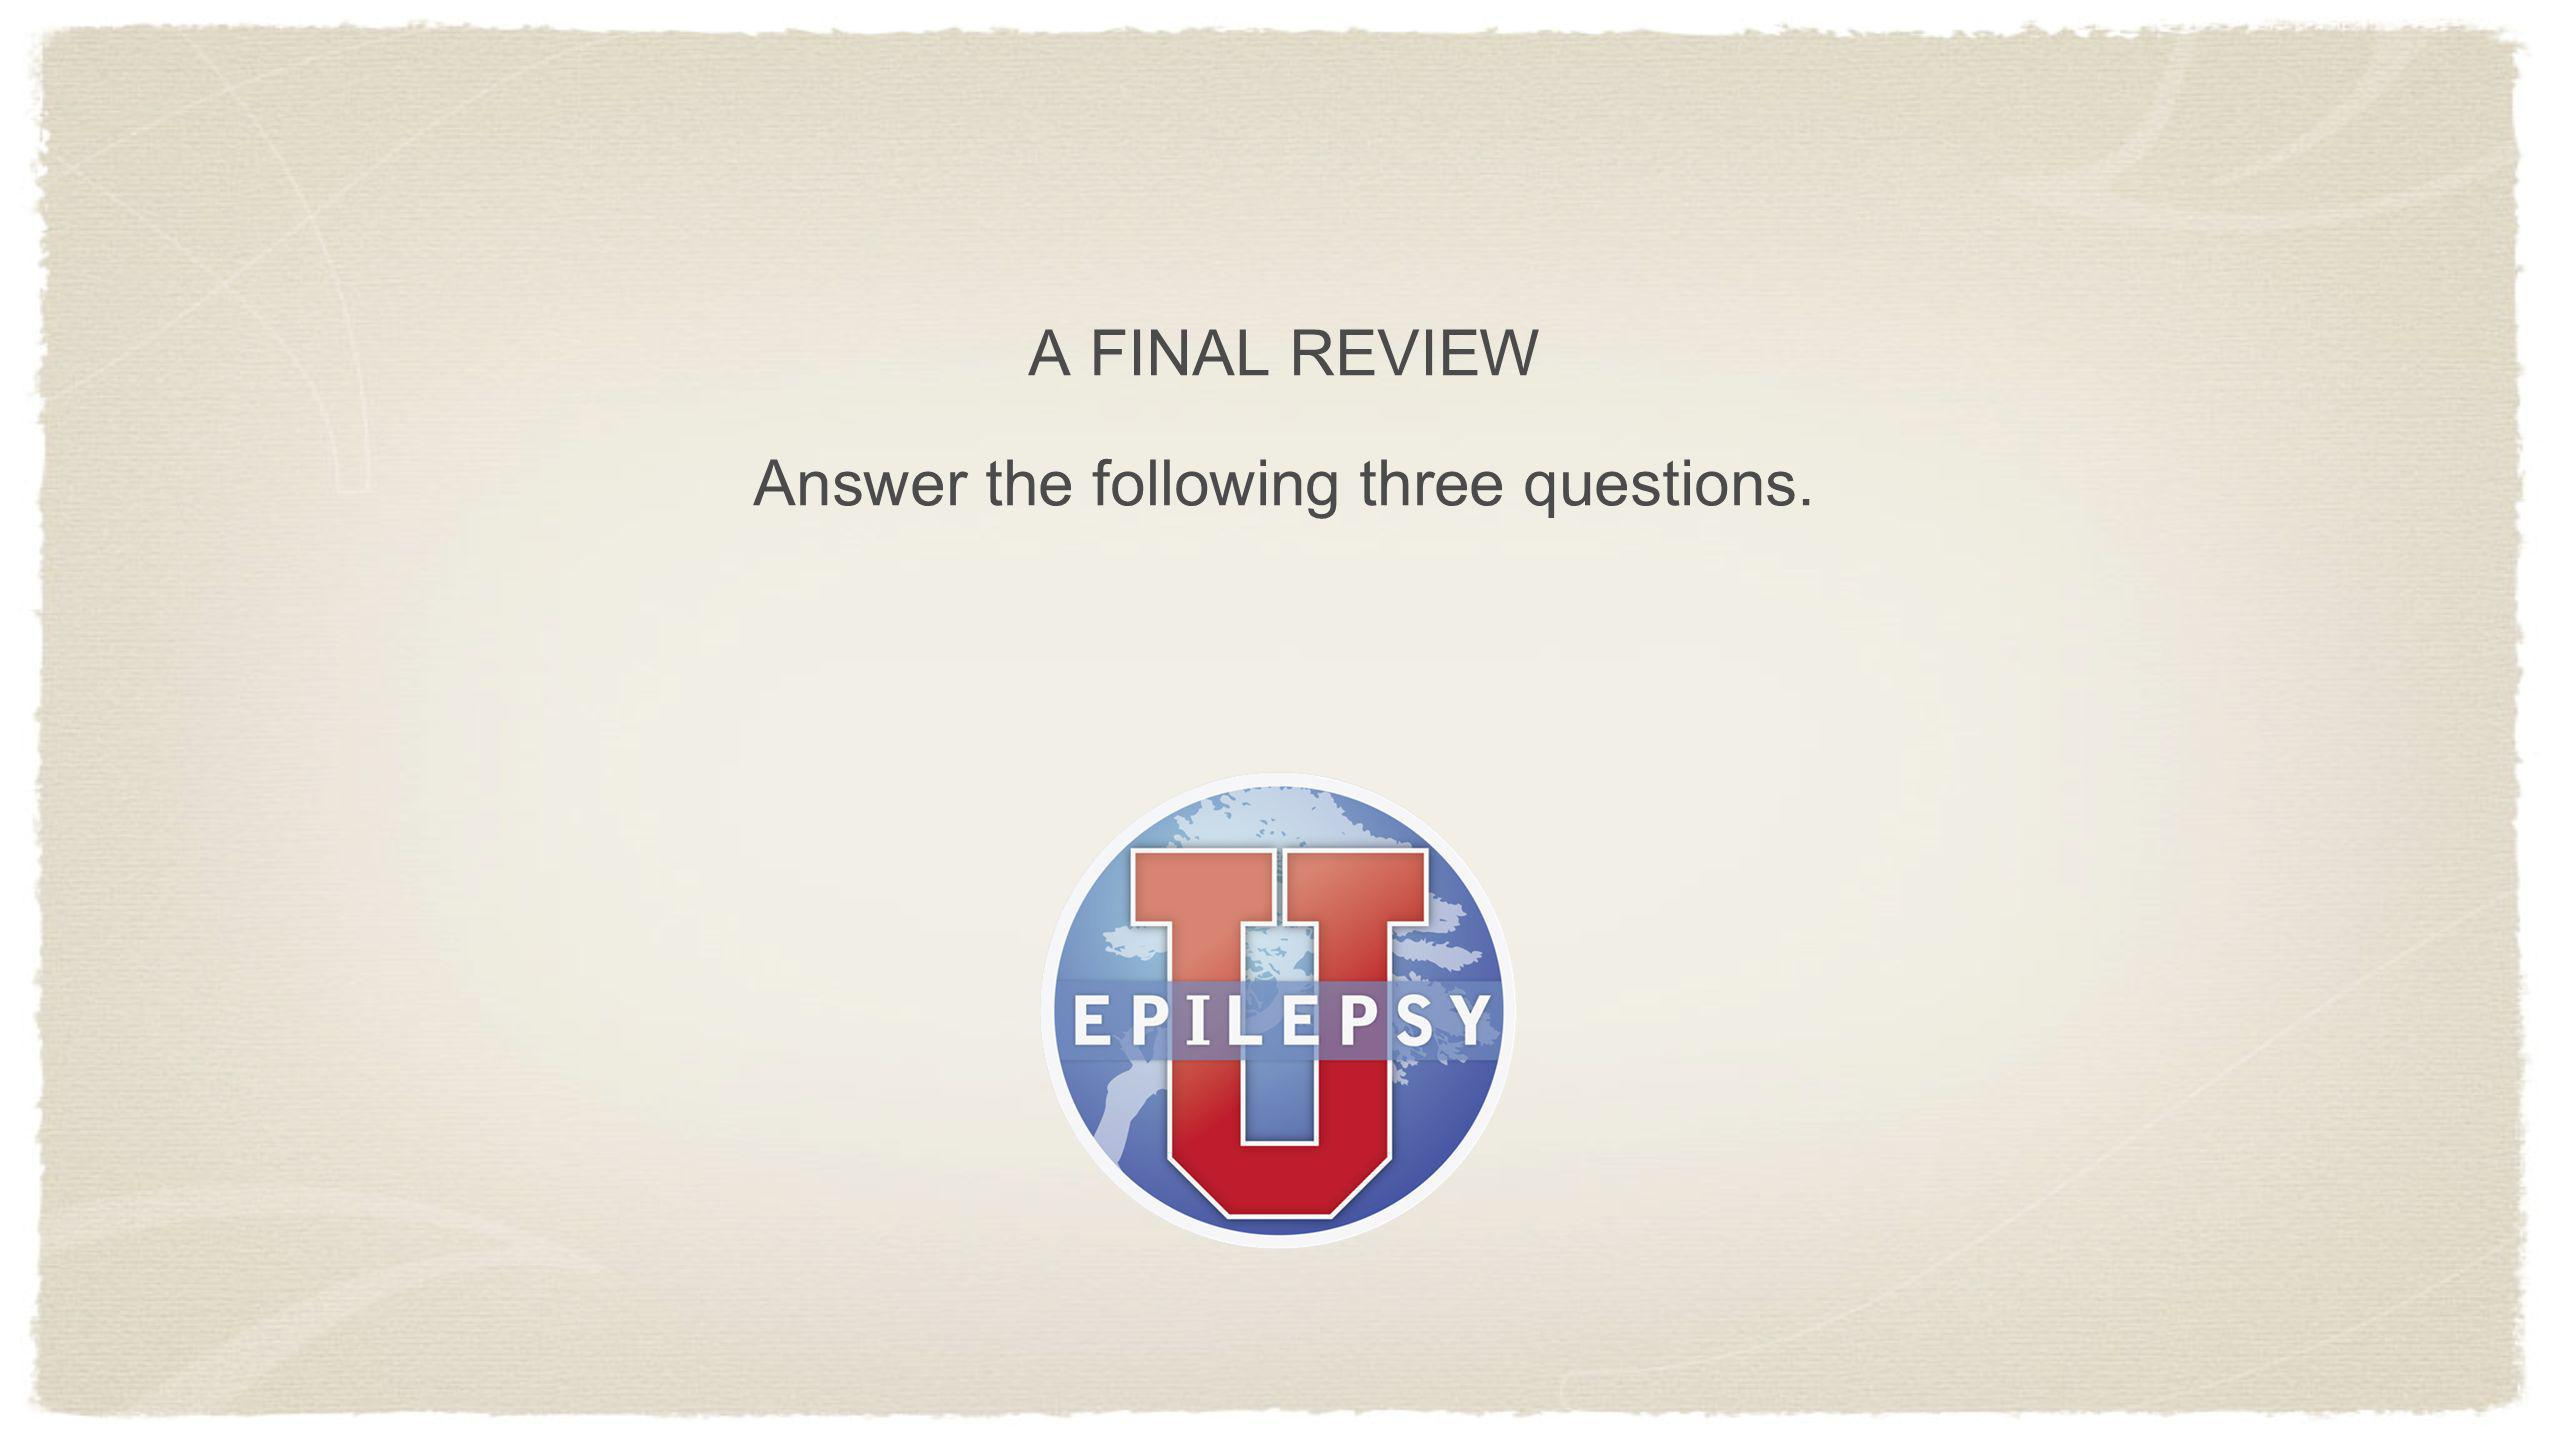 Answer the following three questions.